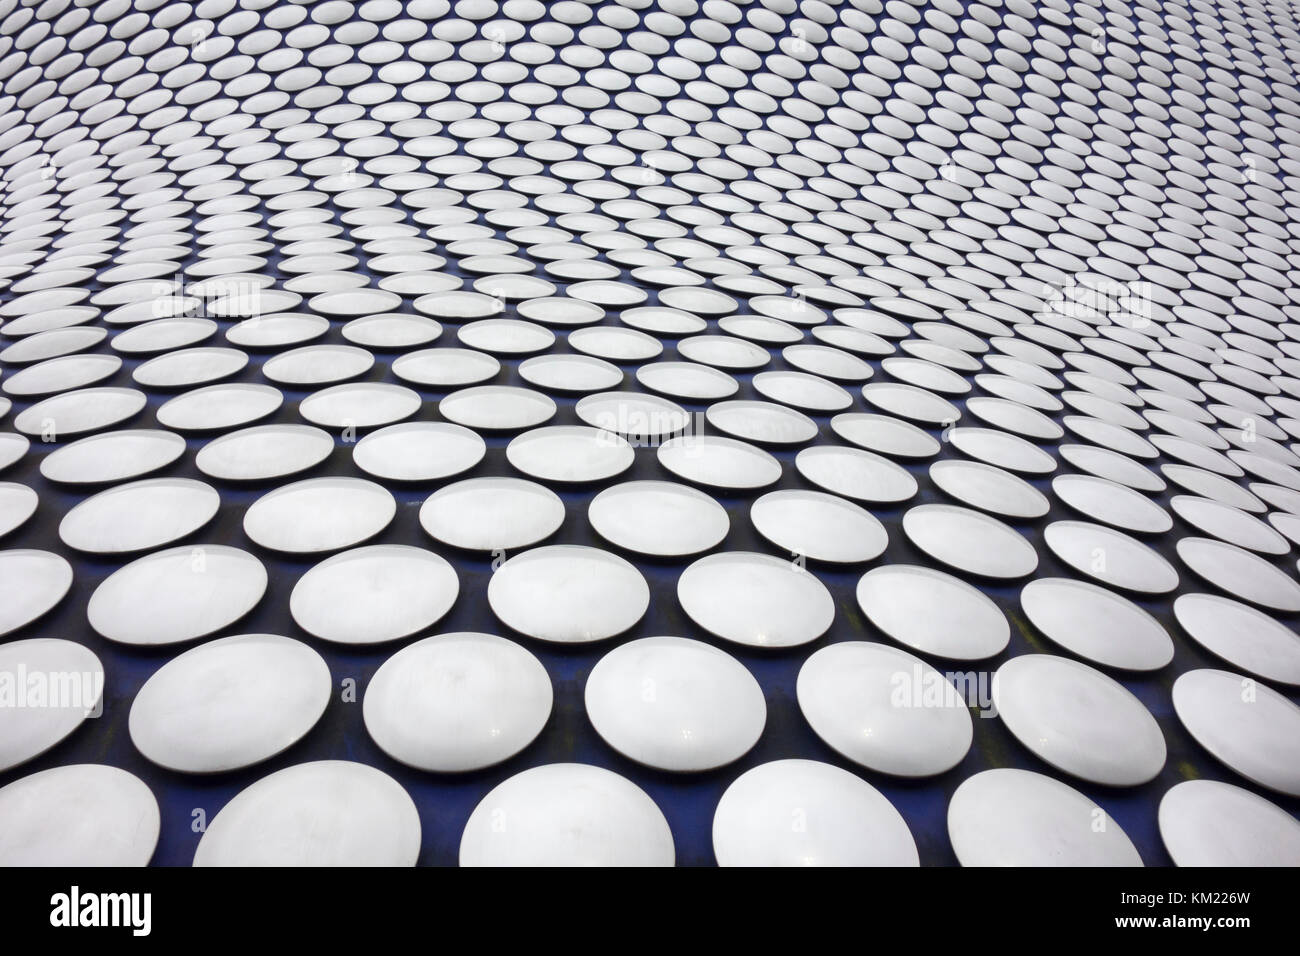 Selfridges Building by architects Future Systems, part of the Bullring Shopping Centre for Selfridges Department - Stock Image